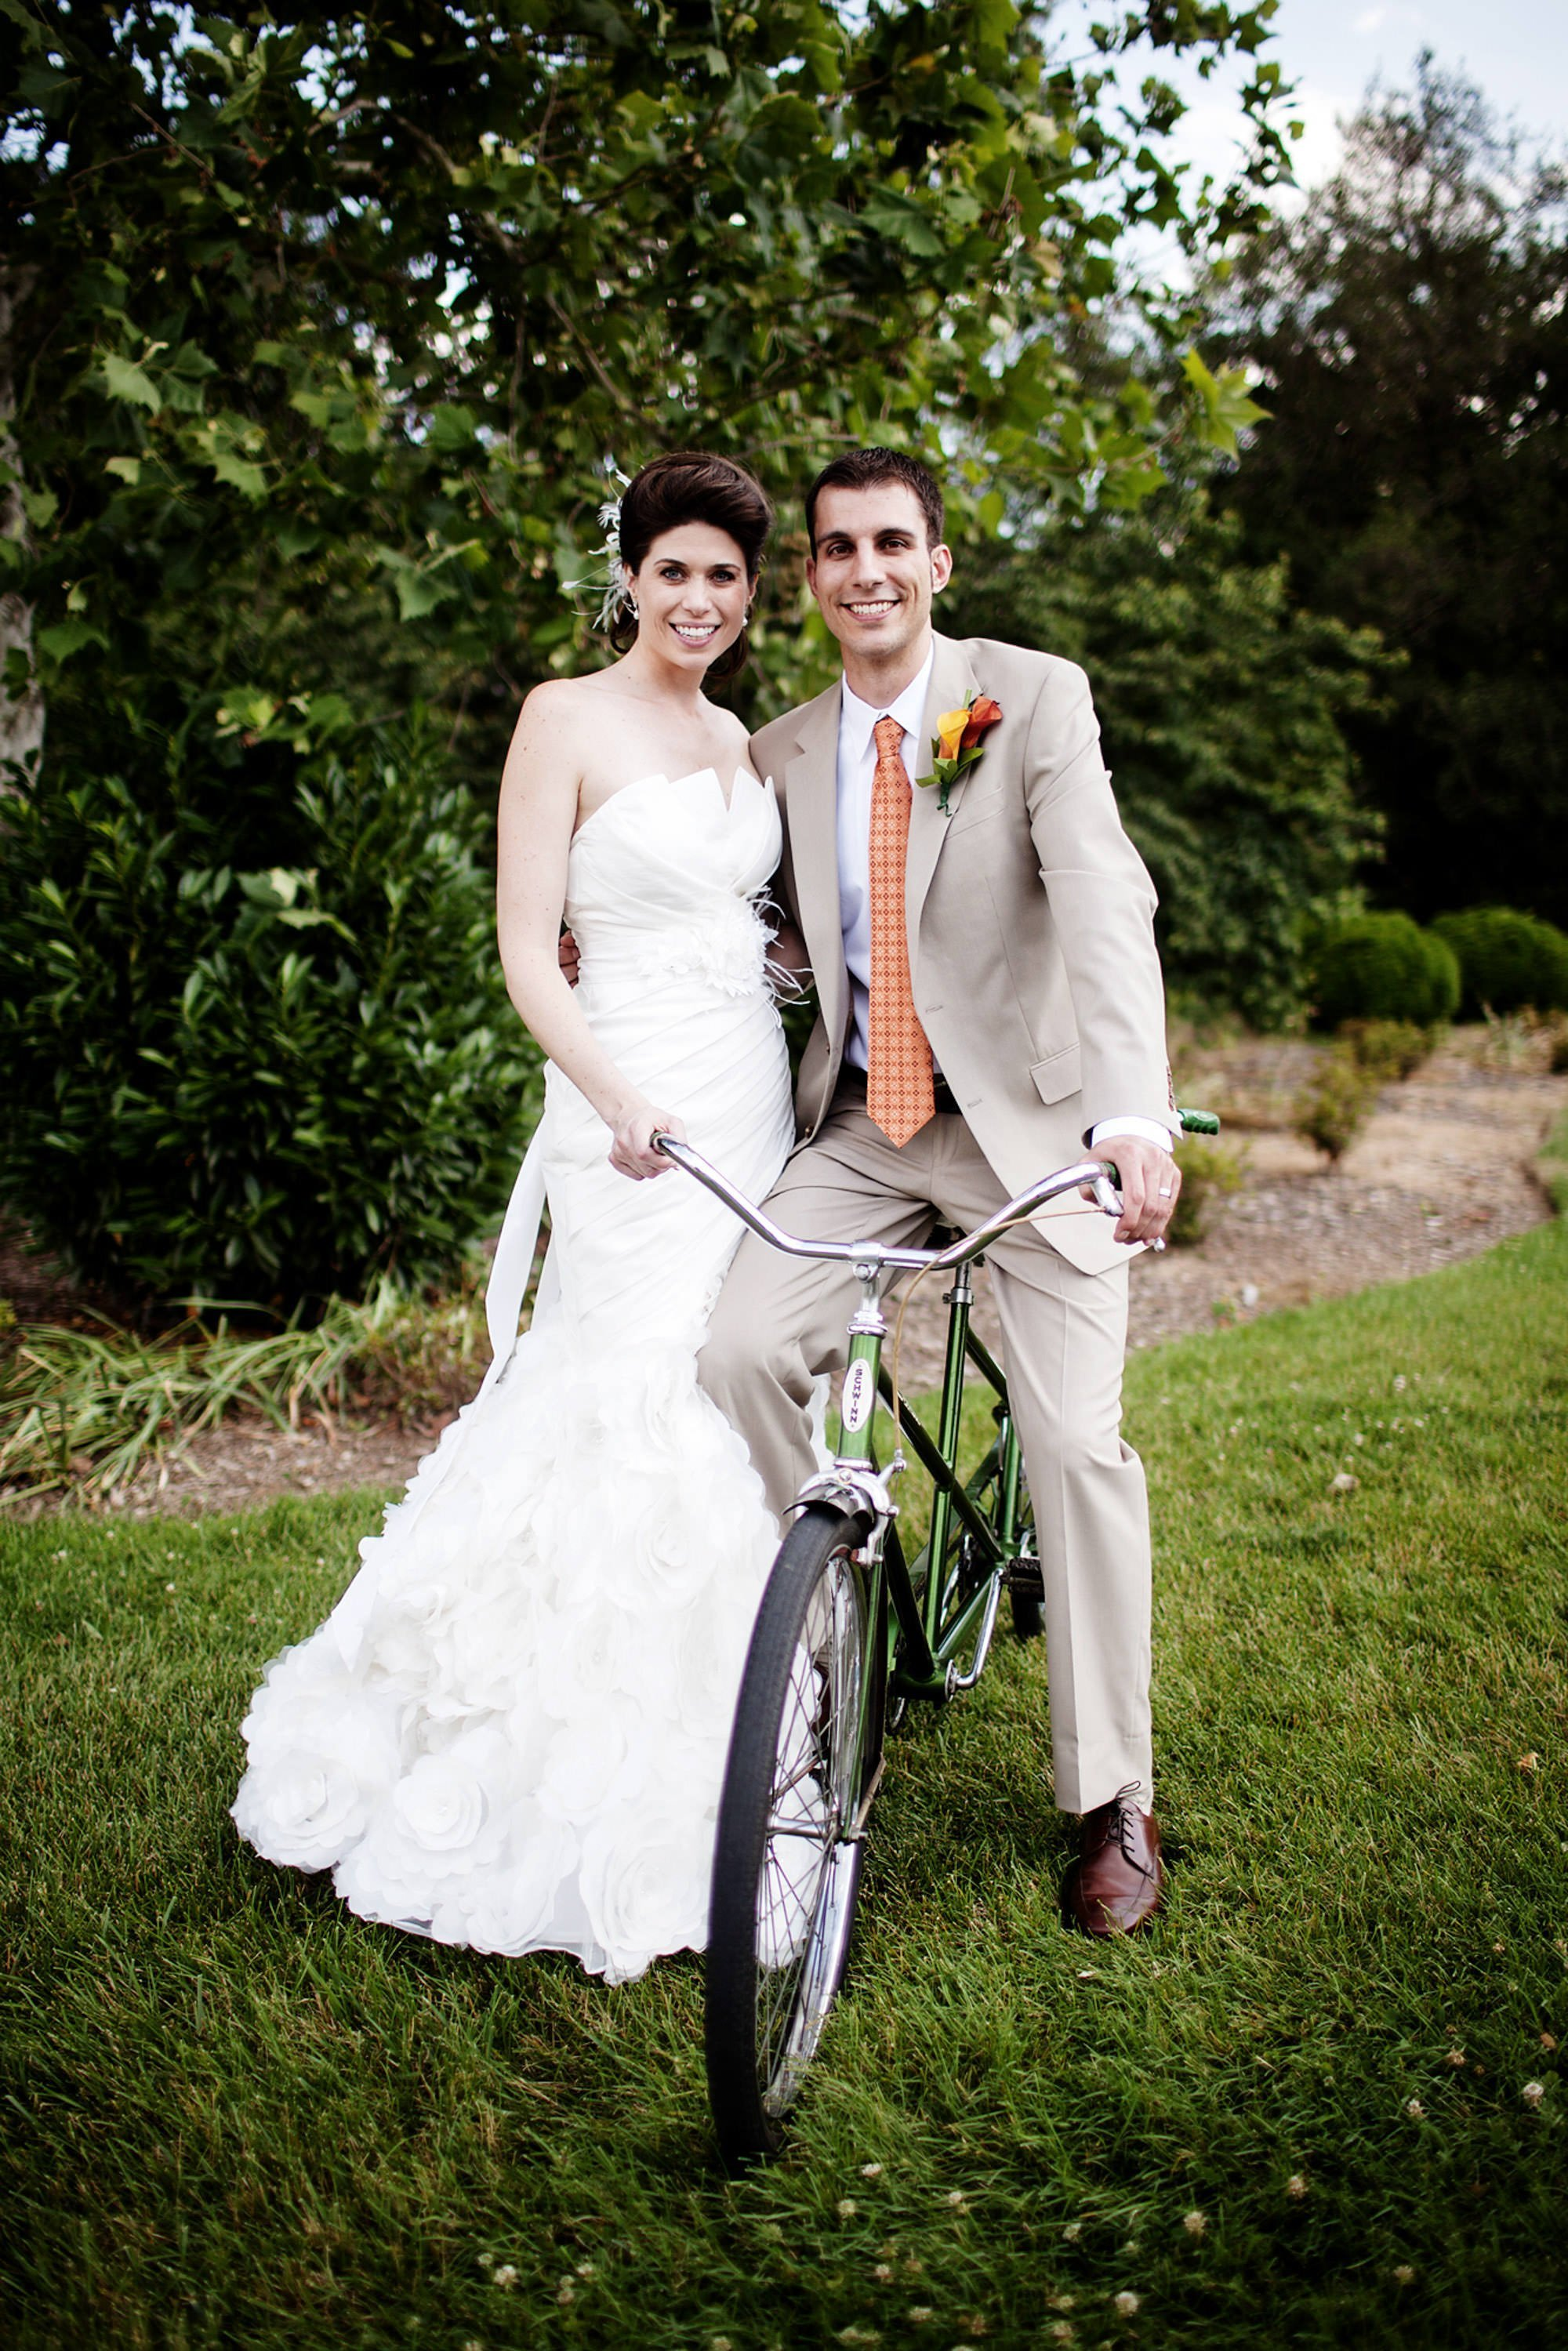 The groom sits on an old Schwinn bicycle after the reception at their River Farm Alexandria Wedding.